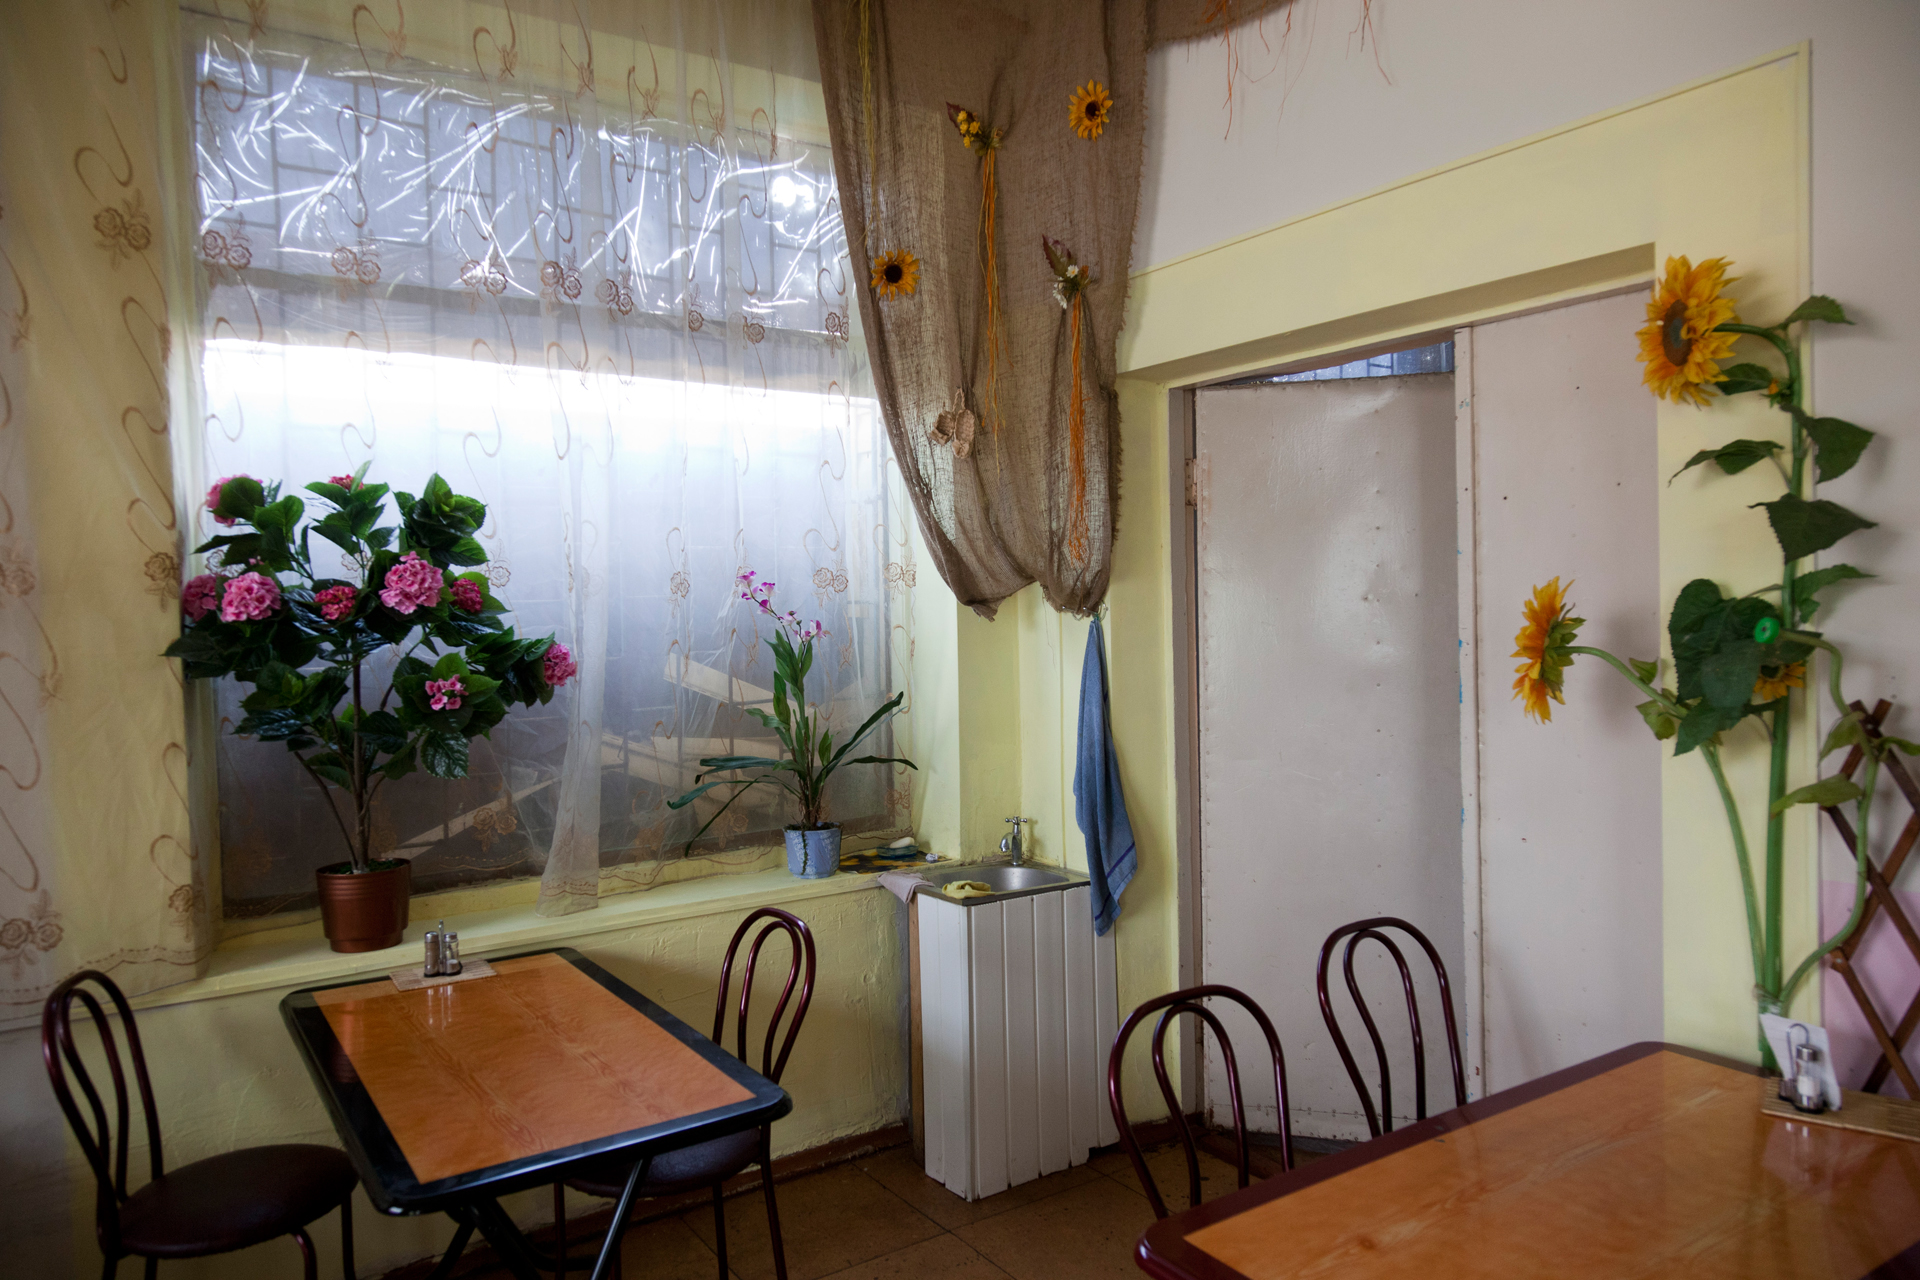 Even though it was only opened a few years ago, the Selena restaurant inside the central market in Simferopol exudes the charm of an old Soviet restaurant.  Simferopol, Crimea